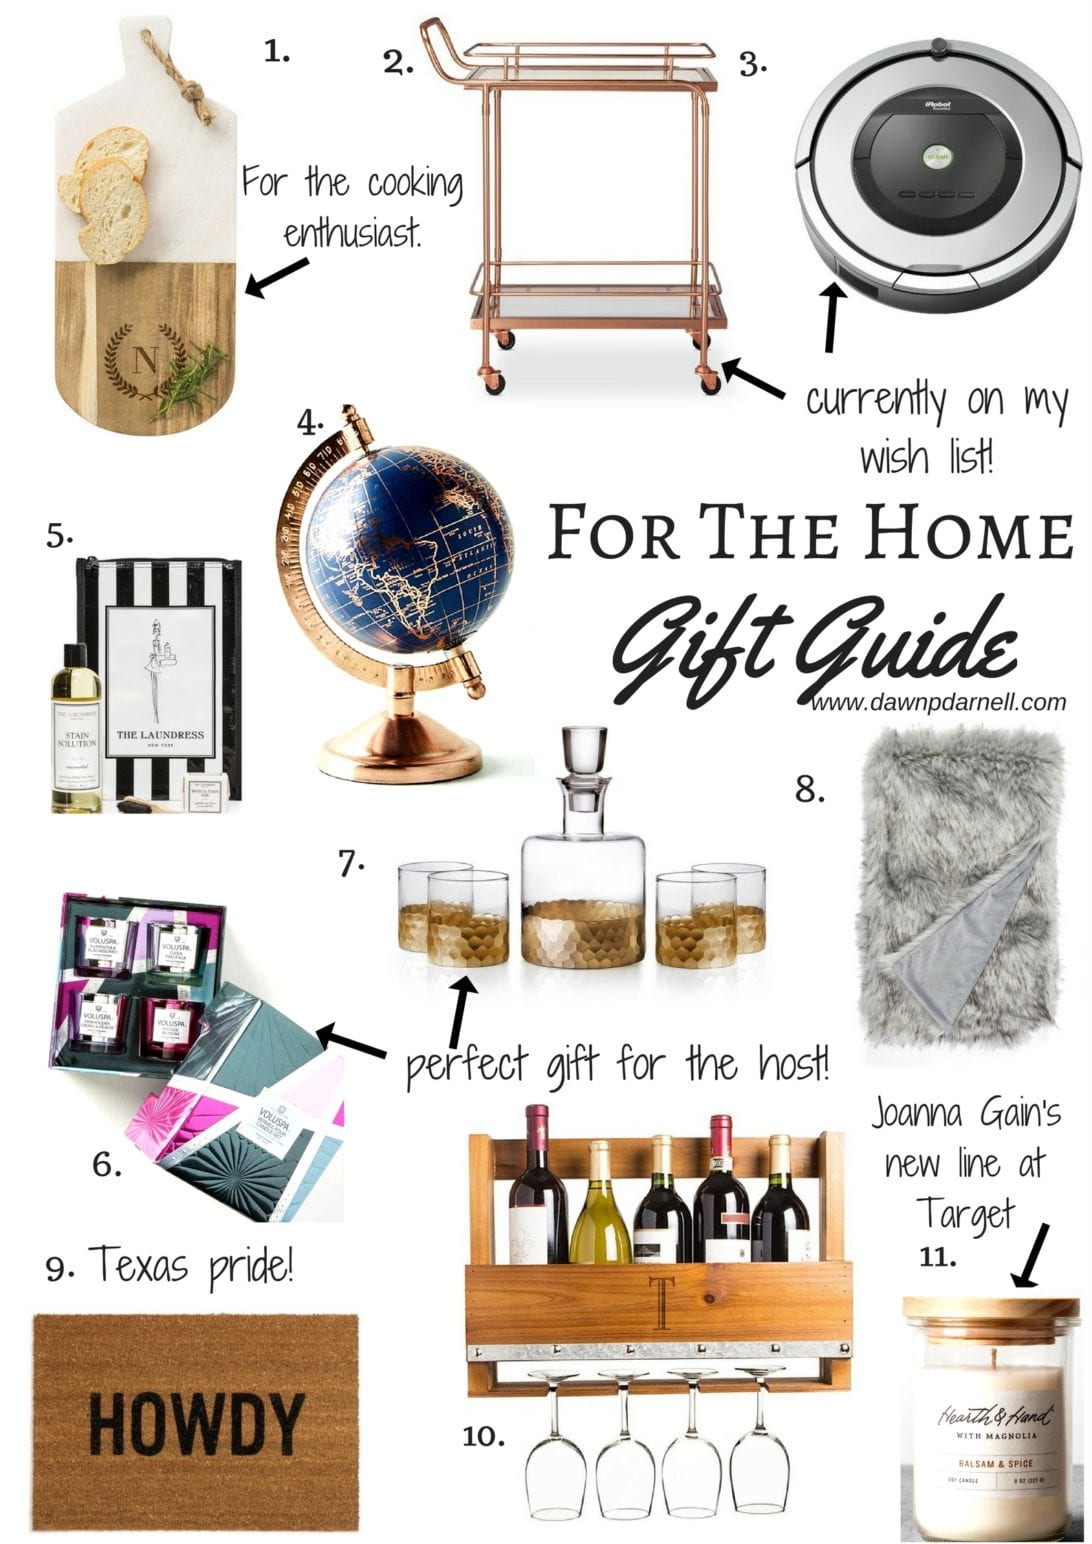 Gift ideas for the home, home gift guide, christmas gift guide, Monogram Marble & Wood Serving Board, Metal, Glass, and Leather Bar Cart, Roomba® 860 Robotic Vacuum, Decorative Globe, Stain Removal Kit, Voluspa Maison Mini Candle Gift Set, 'Daphne' Decanter & Whiskey Glasses, Fox Faux Fur Throw Blanket, 'Howdy' Doormat, Personalized Rustic Wall Wine Rack & Glass Holder, Hearth & Hand with Magnolia Lidded Candle